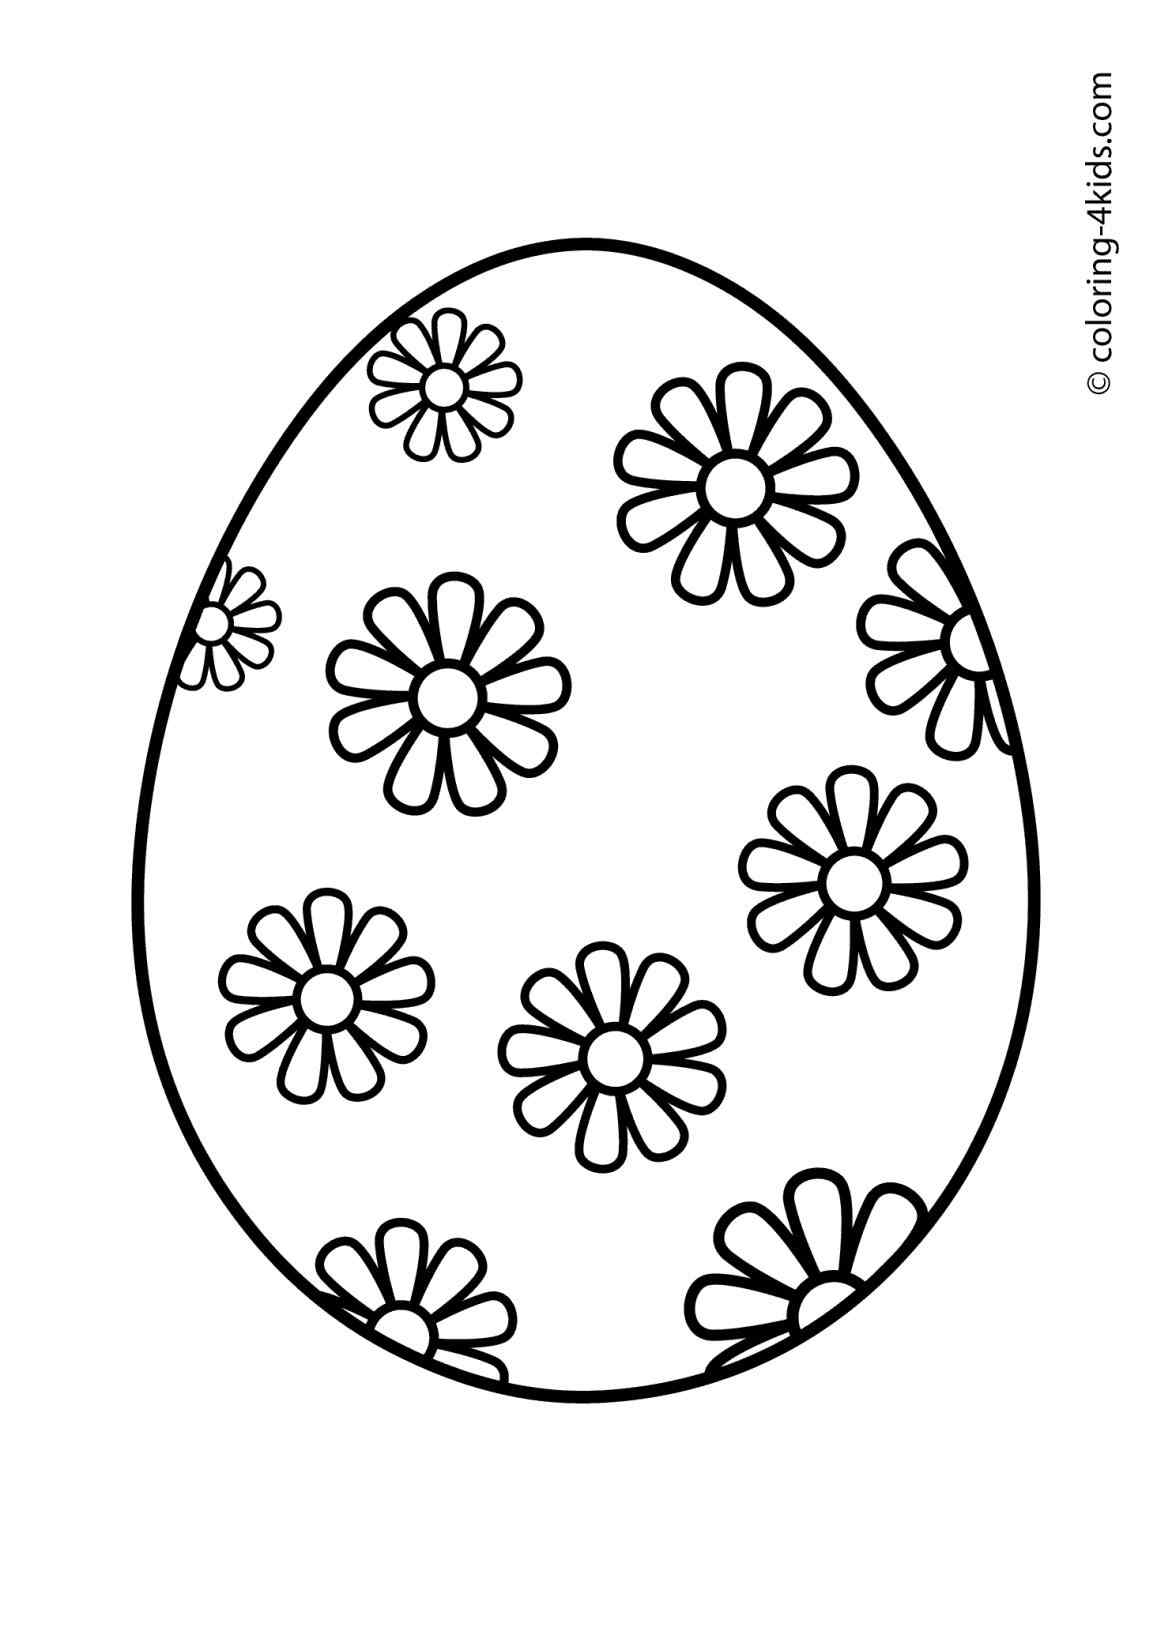 easter egg coloring pages free printable easter egg coloring pages coloring home egg easter coloring pages